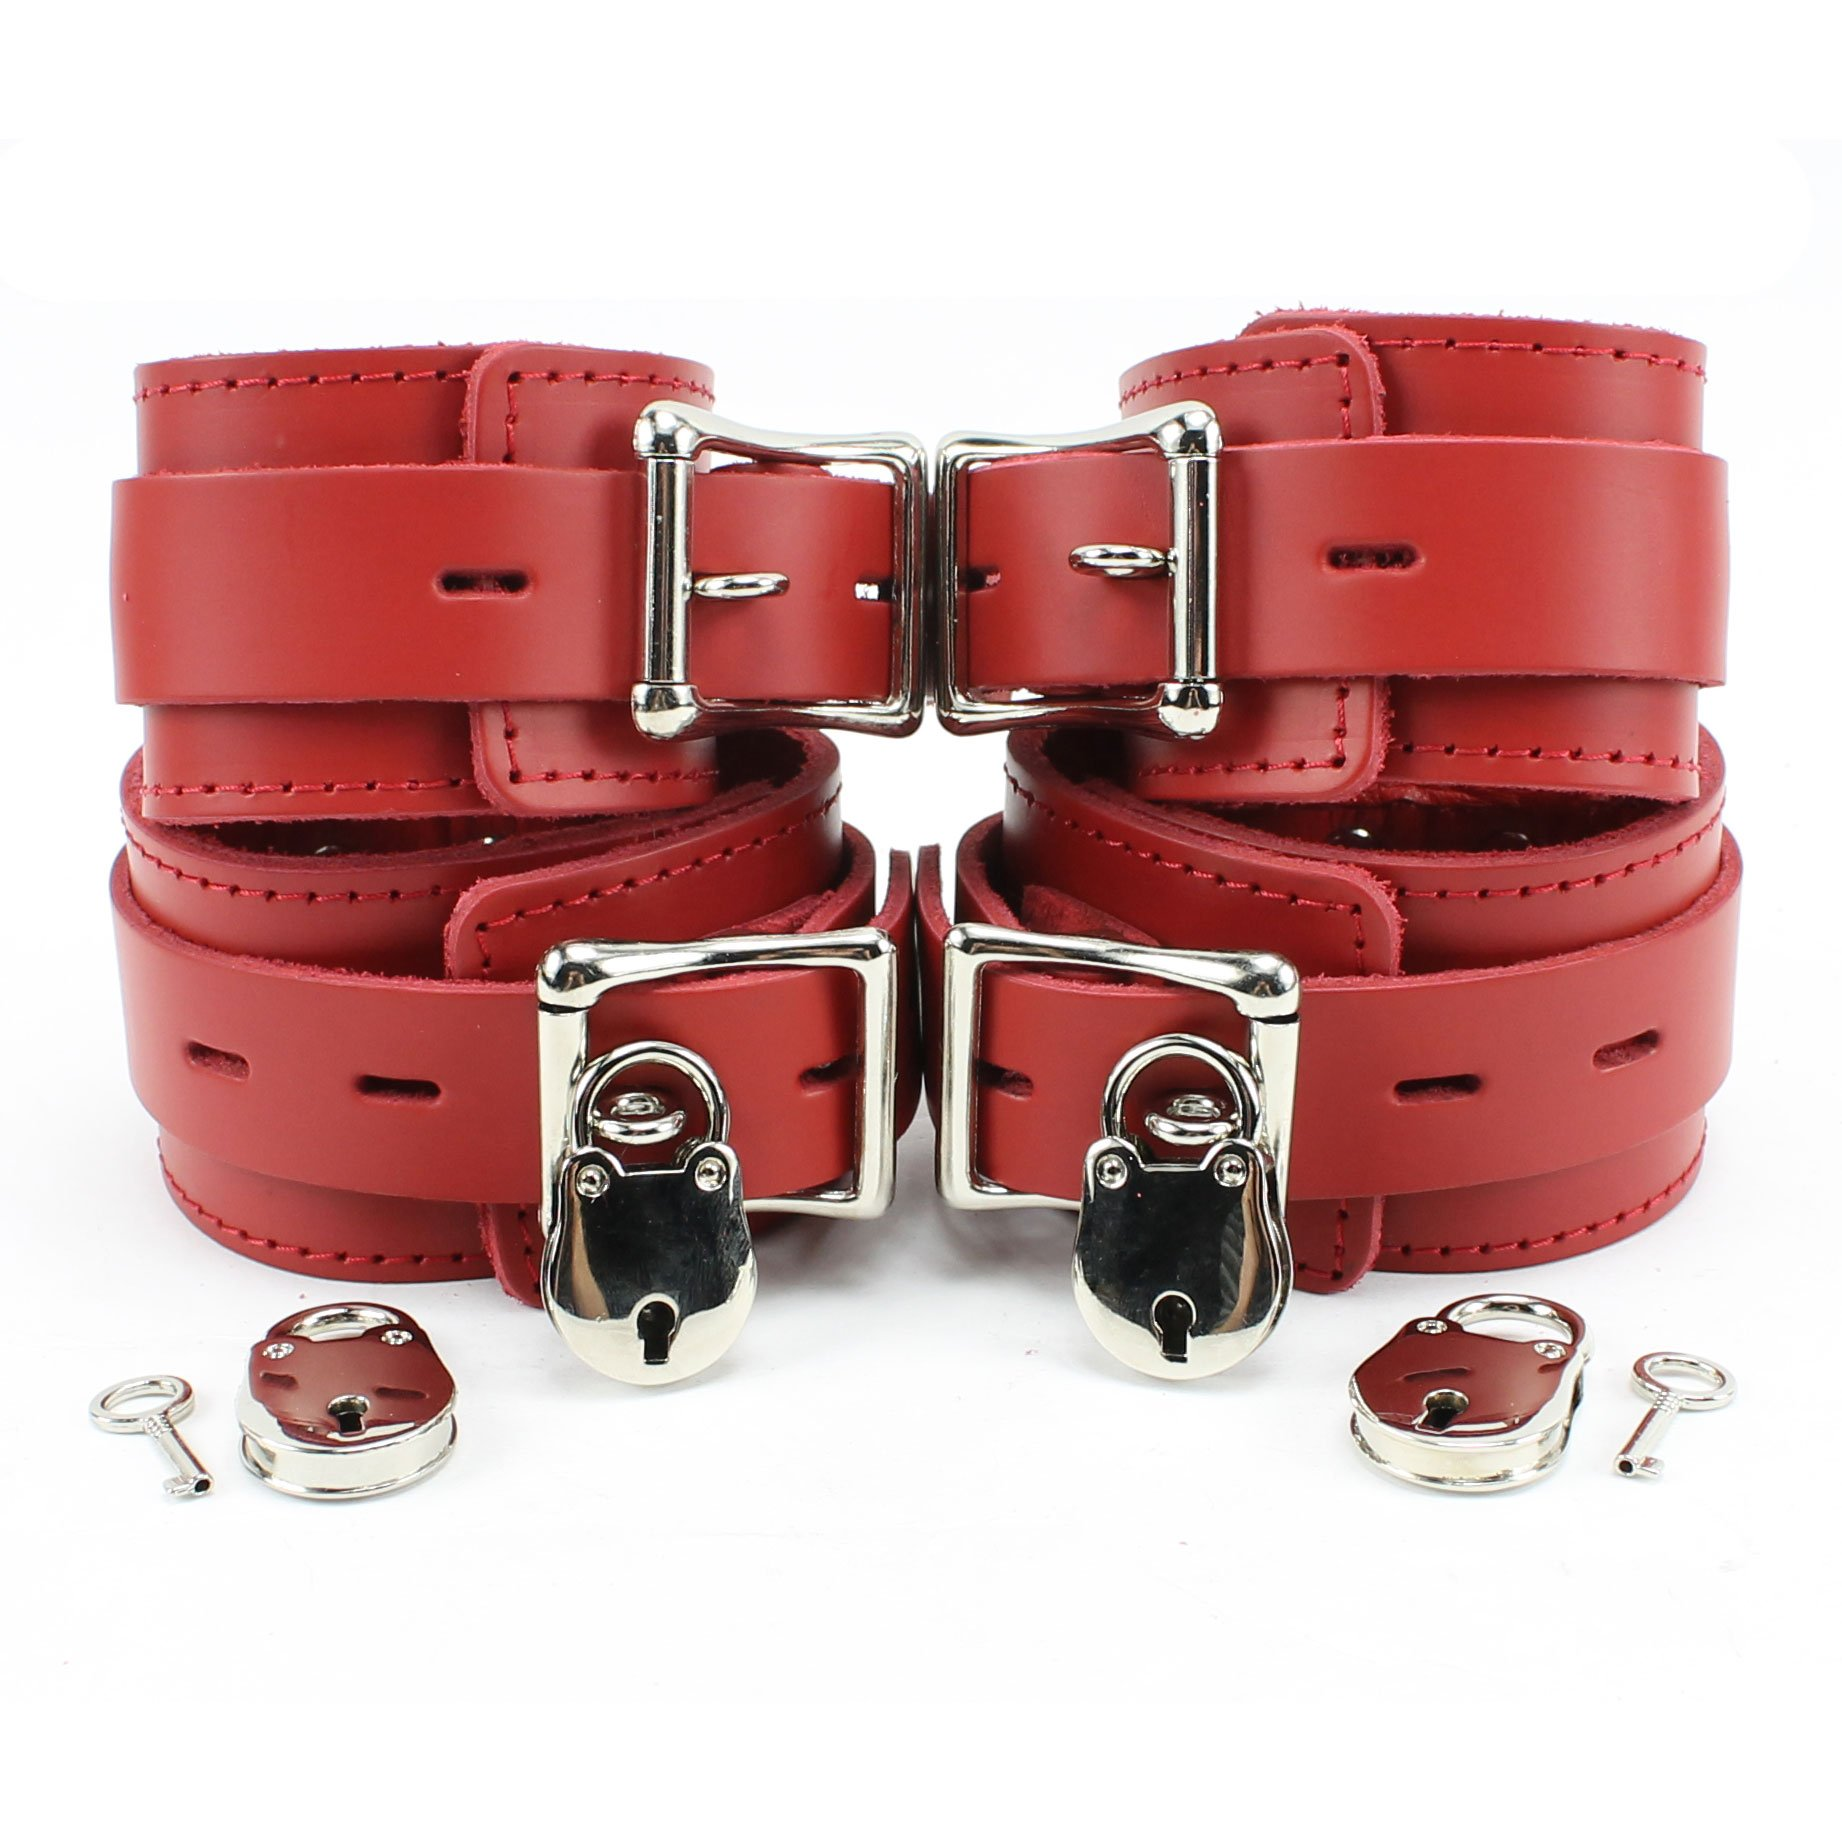 Atlanta Wrist and Ankle Lockable Cuffs Combo Ultra Soft Lambskin Leather (Red) by VP Leather